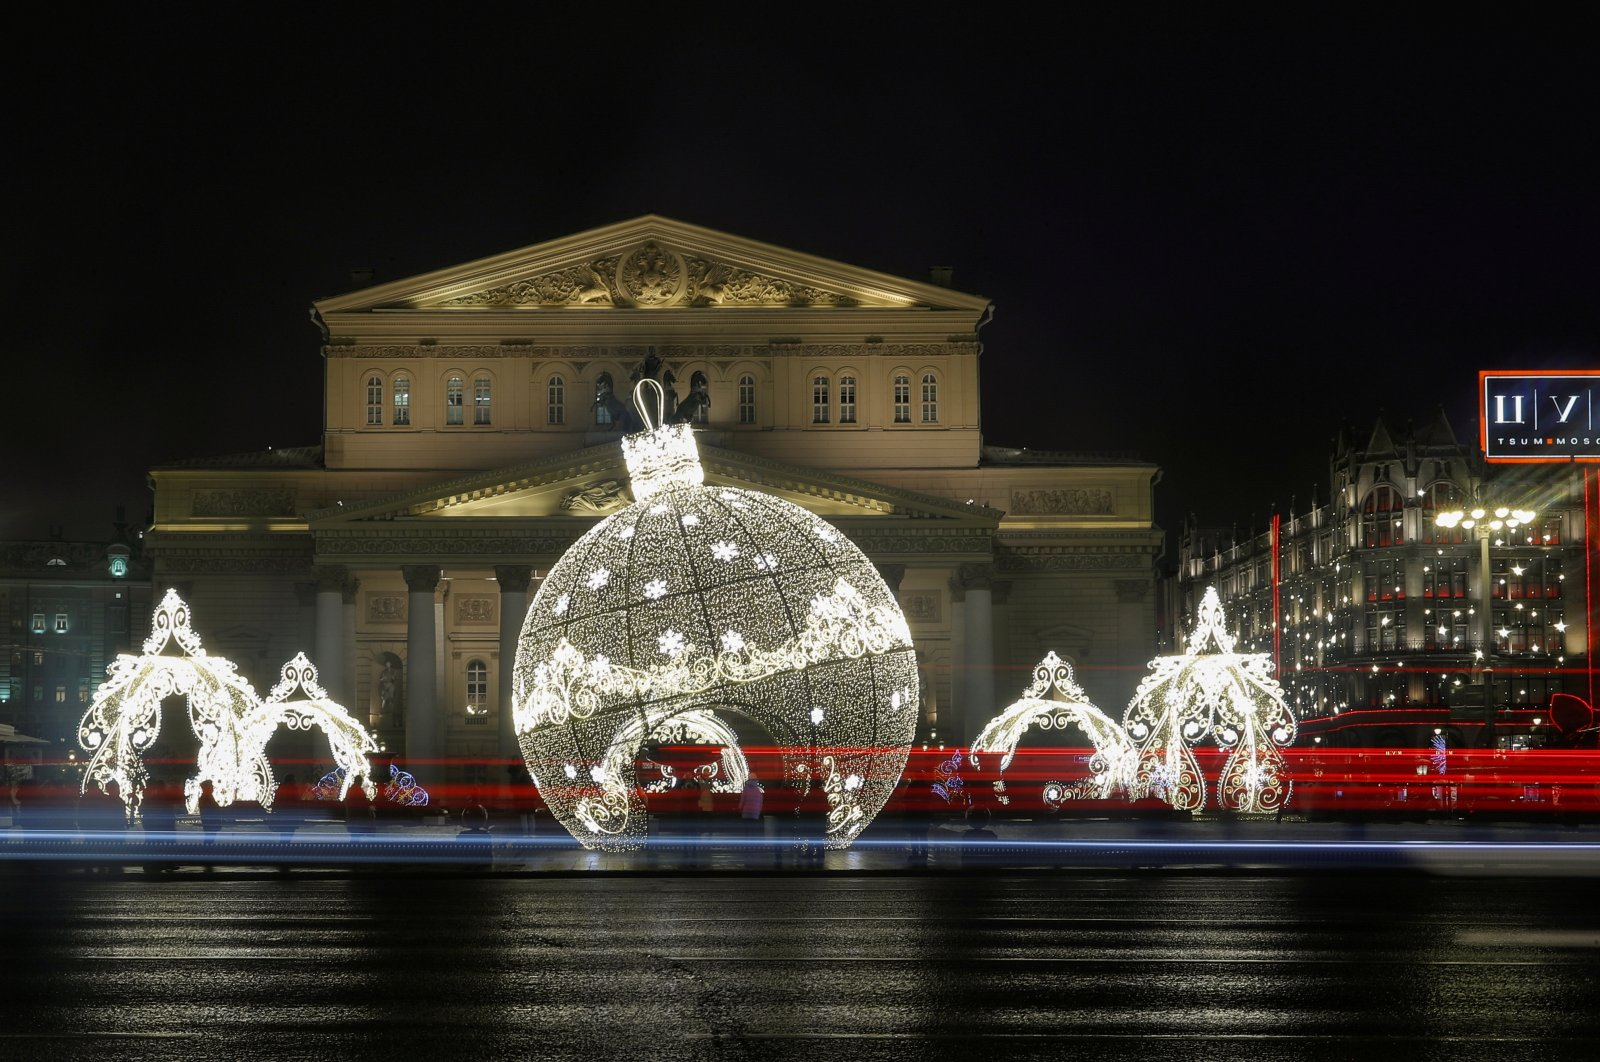 Traffic flows past the New Year and Christmas season decorations in front of the Bolshoi Theatre in Moscow, Russia, Dec. 16, 2020. (Reuters Photo)